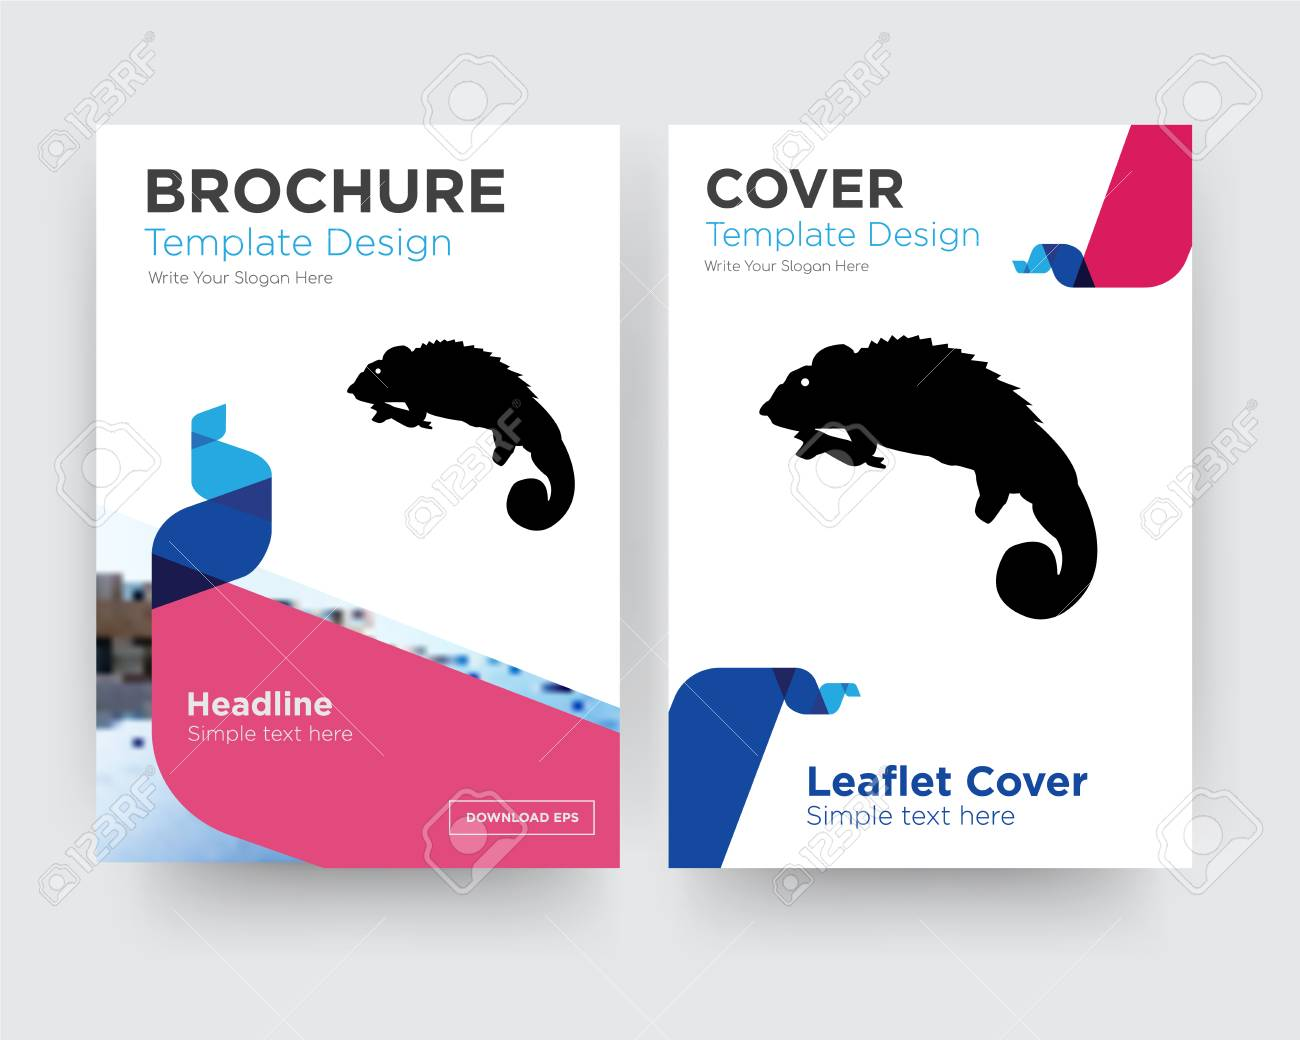 Chameleon Brochure Flyer Design Template With Abstract Photo